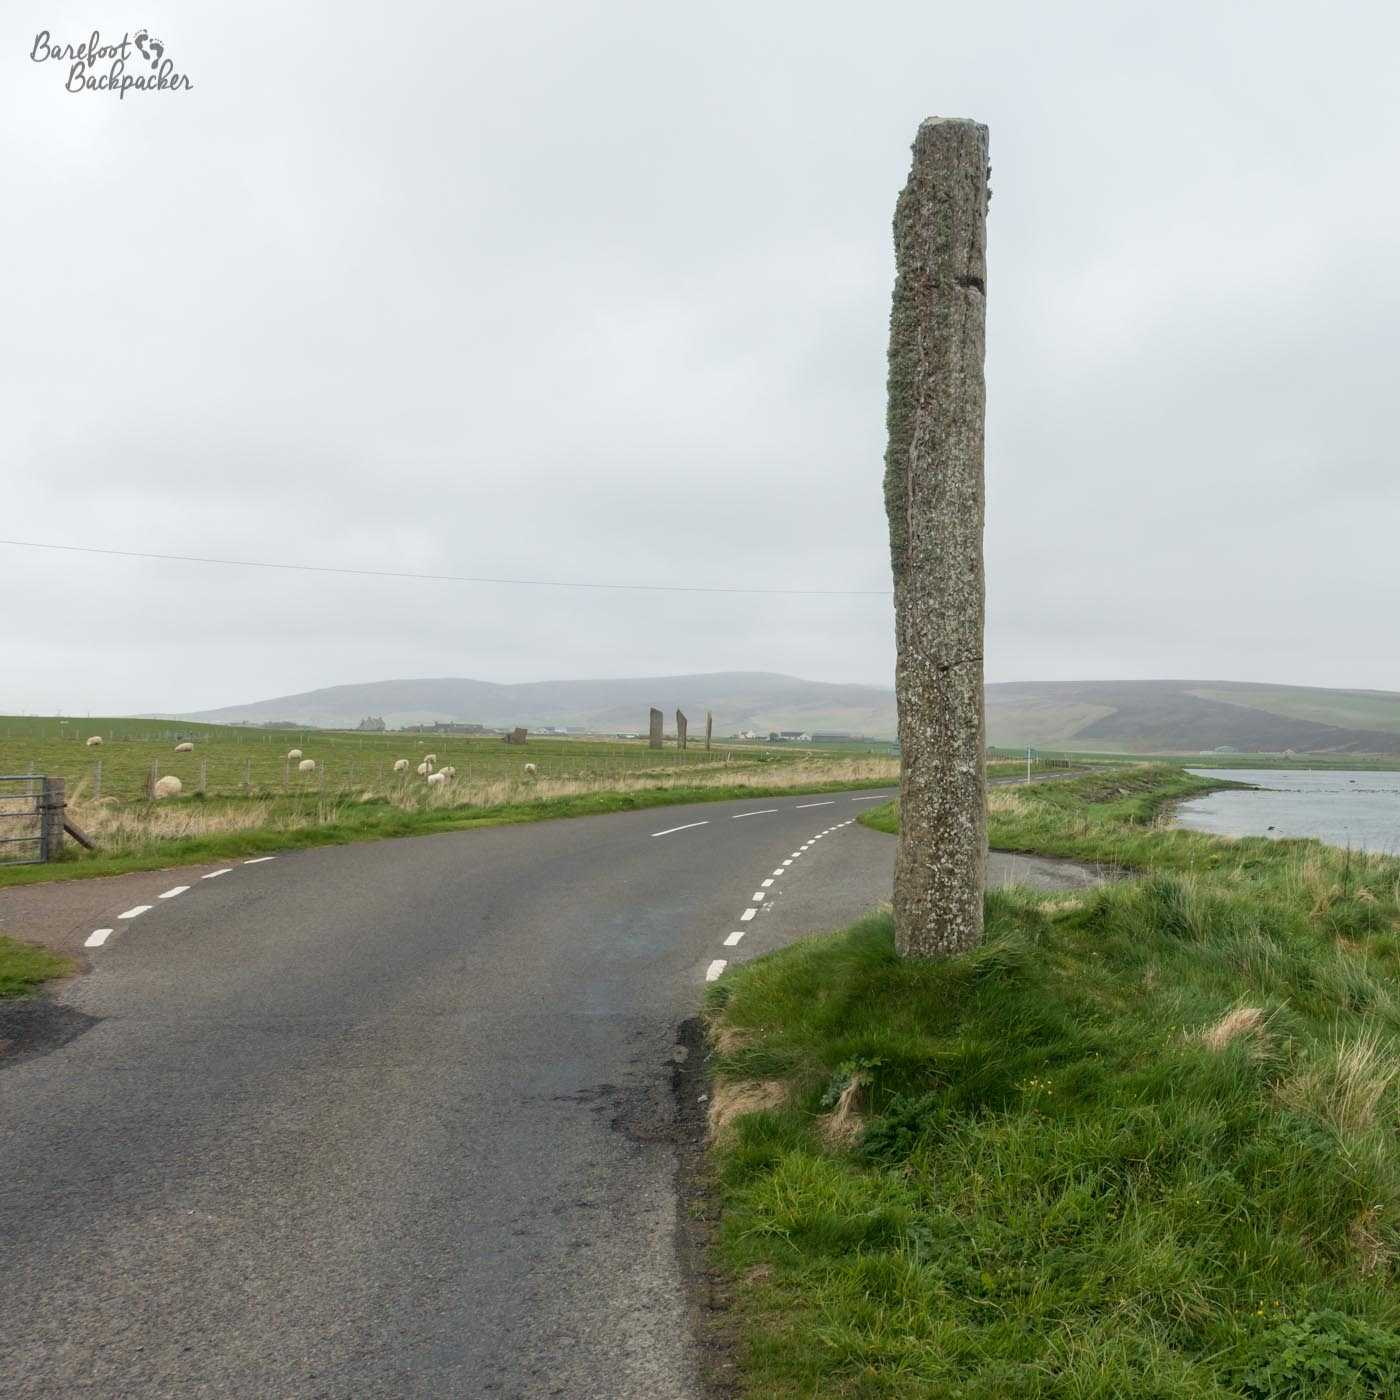 A road runs between a field and a loch. In the distance are three large standing stones. In the foreground to the right of the road is a huge solitary stone, much taller than anything else around.